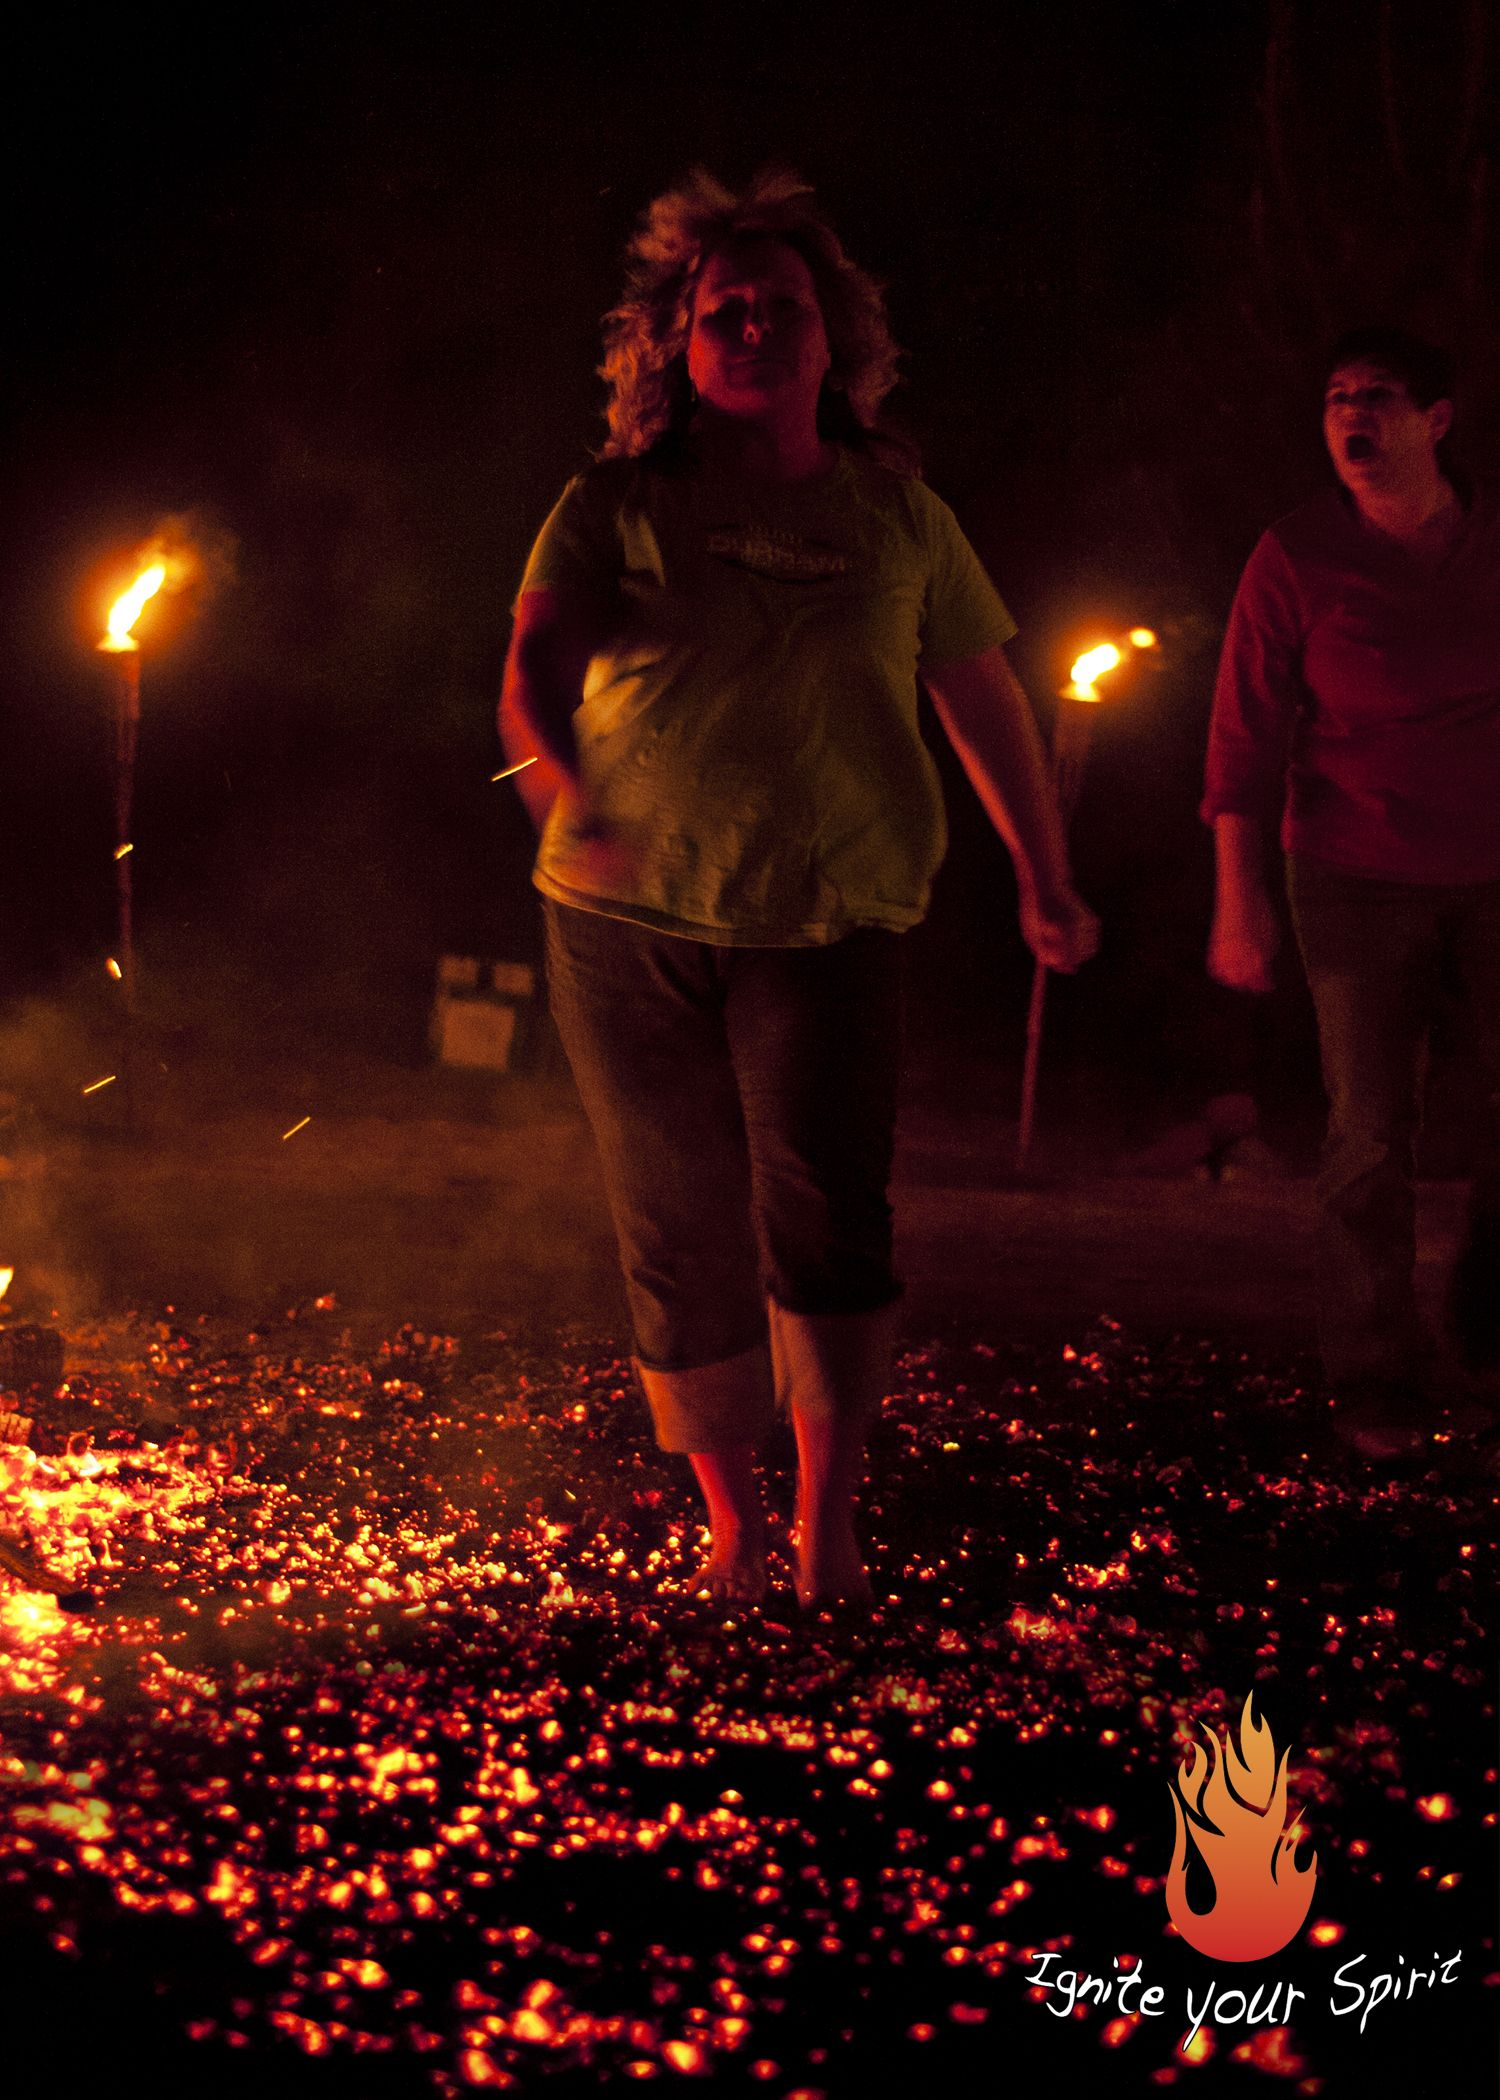 A Firewalking Participant Firewalking At One Of Claudia Webers Ignite Your Spirit Empowerment Seminars